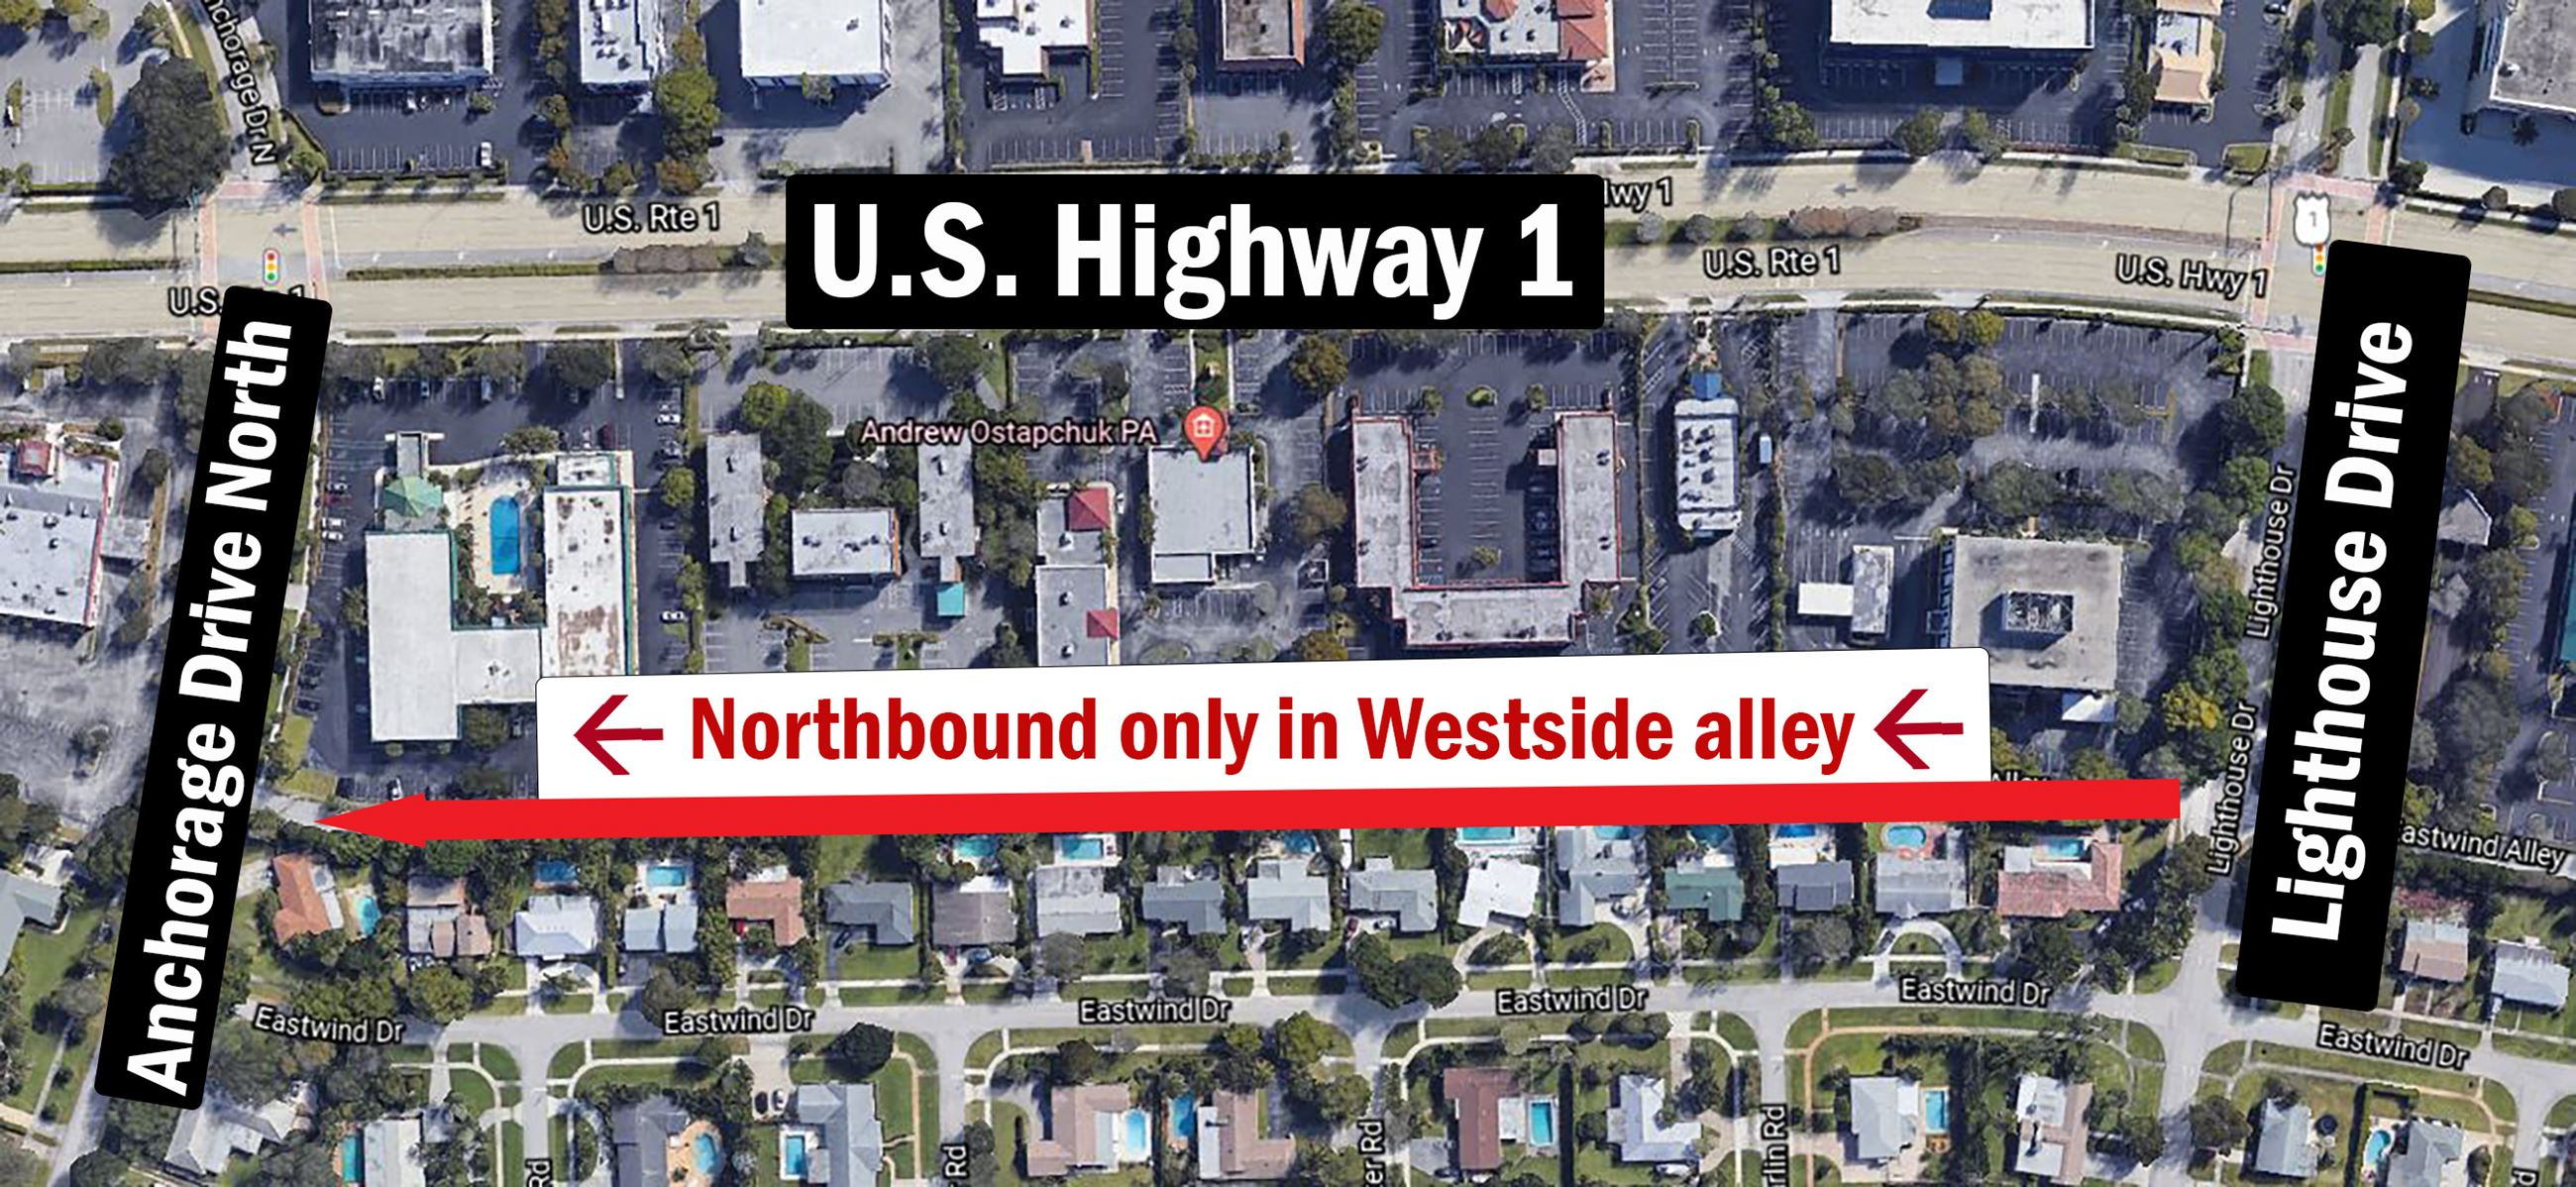 Westside alley closure. Aerial photo showing work area